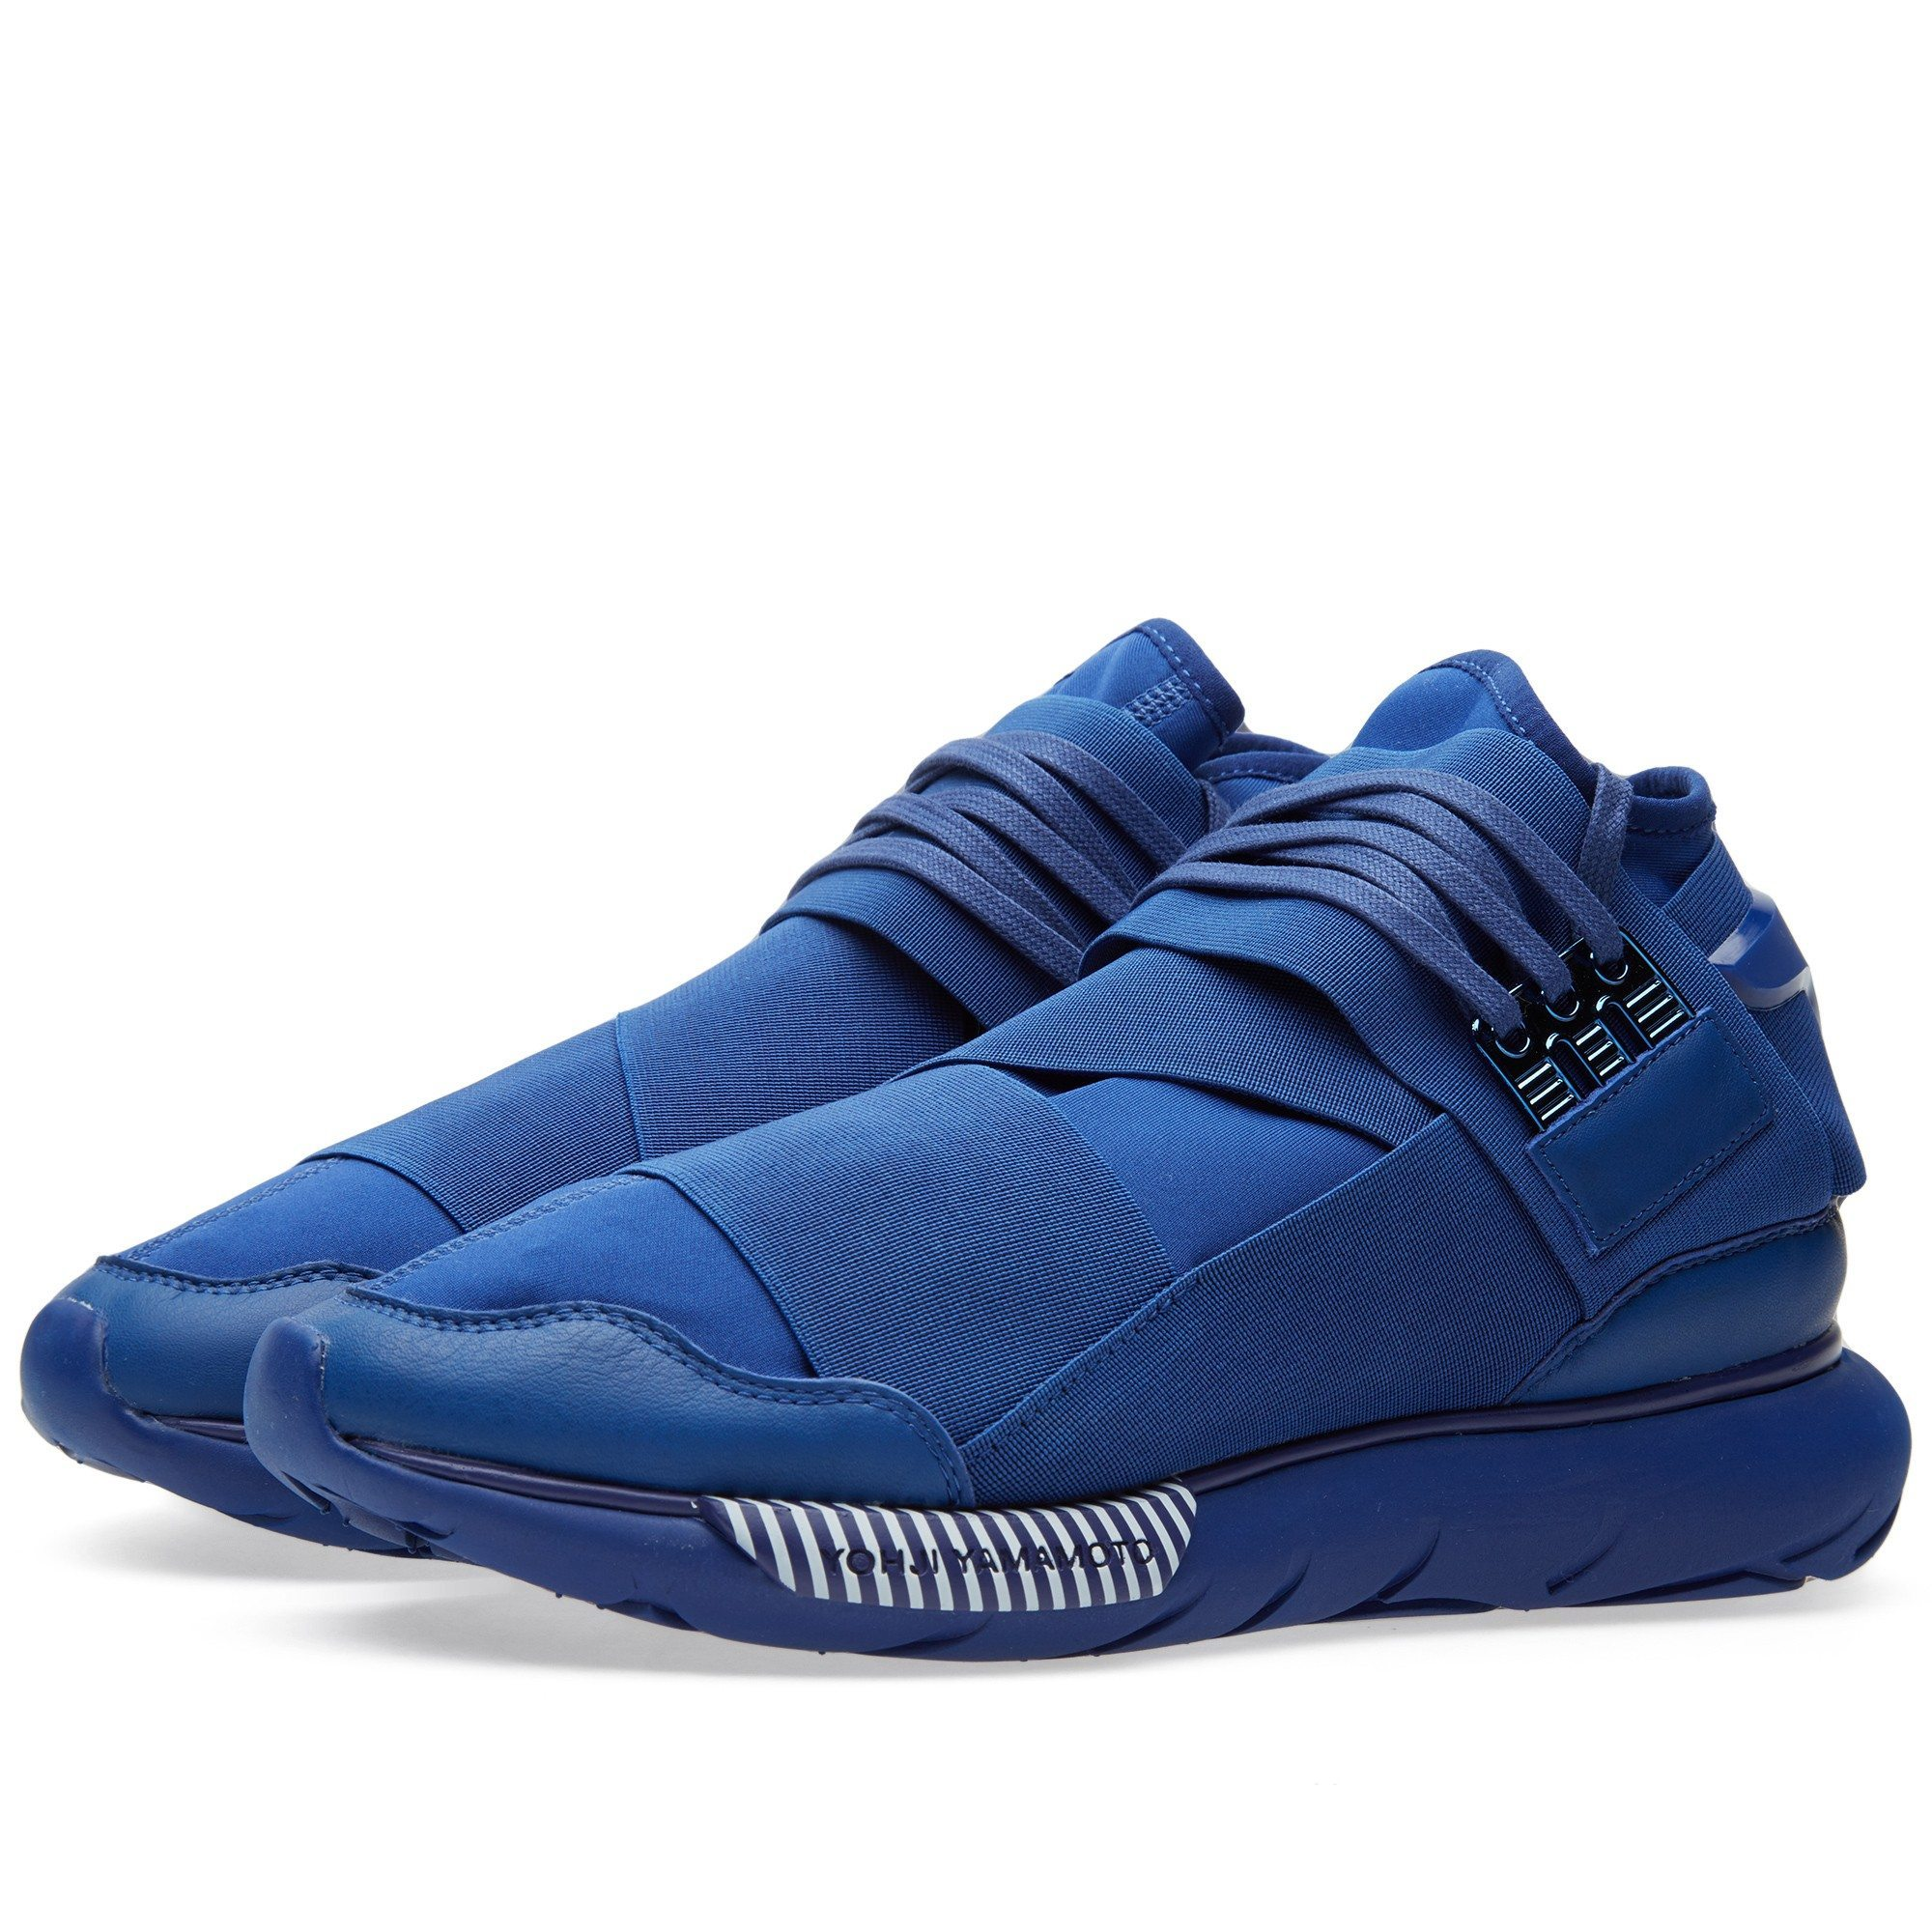 Y 3 Qasa High Roundel Blue